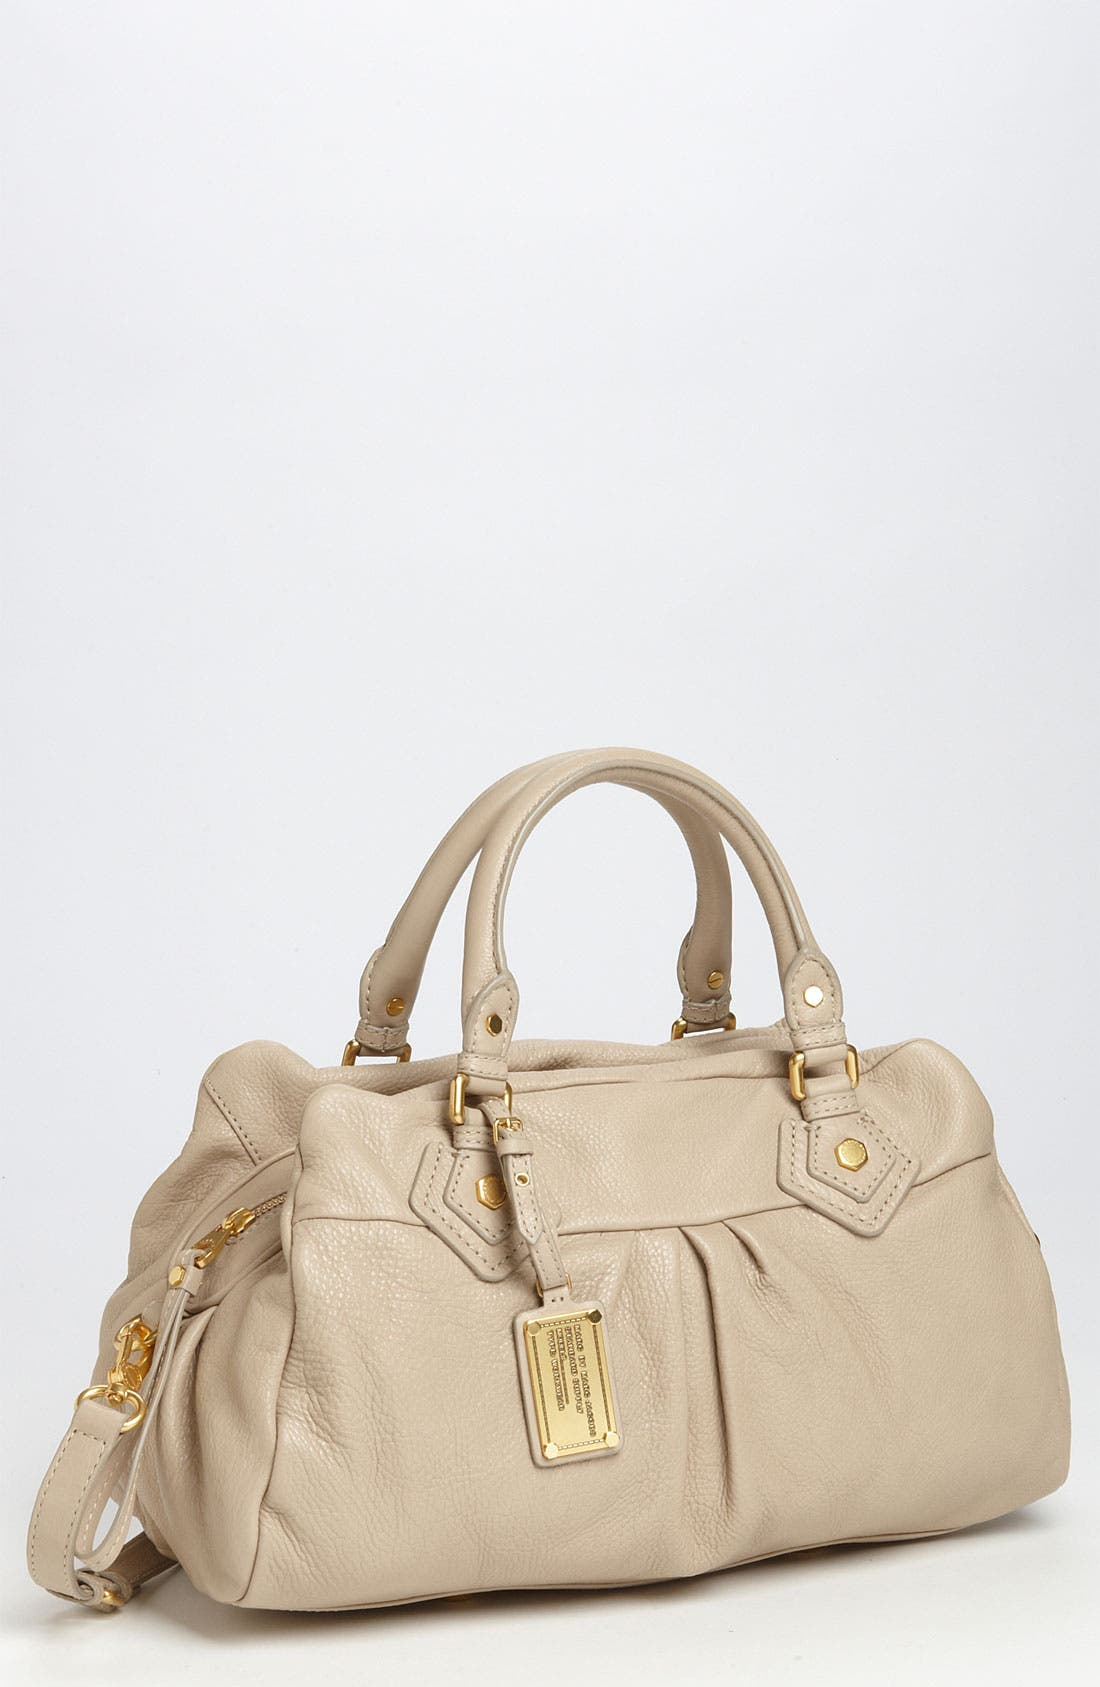 MARC BY MARC JACOBS 'Classic Q - Groovee' Satchel,                         Main,                         color, Creme